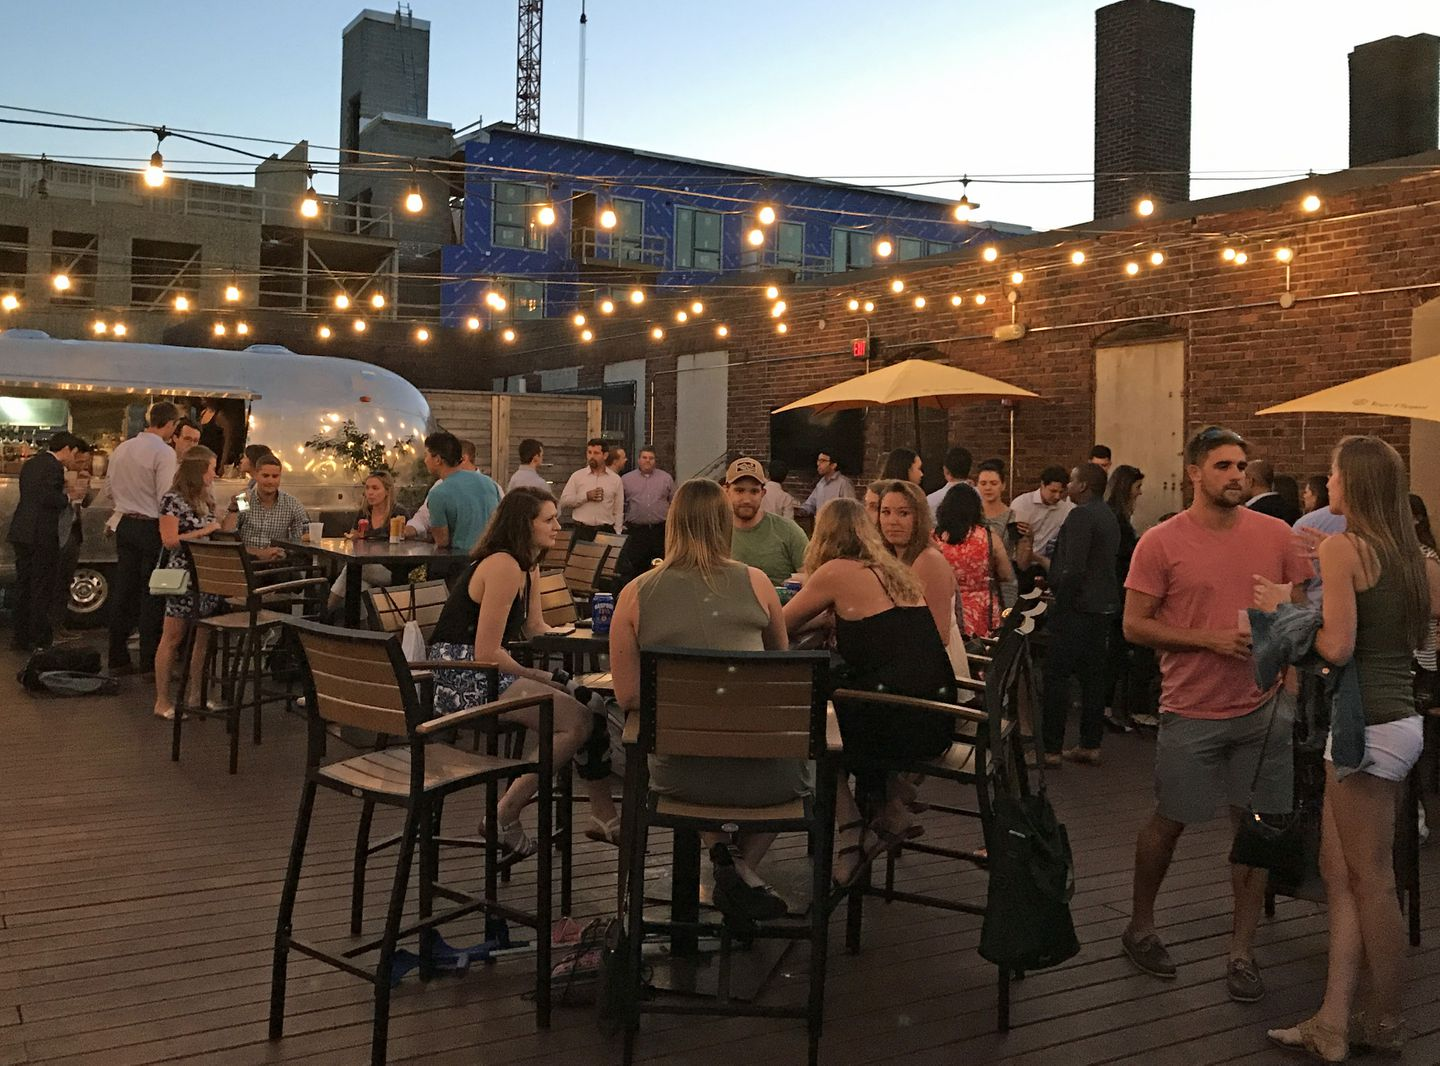 5 Of The Best Rooftop Bars And Restaurants In Boston The